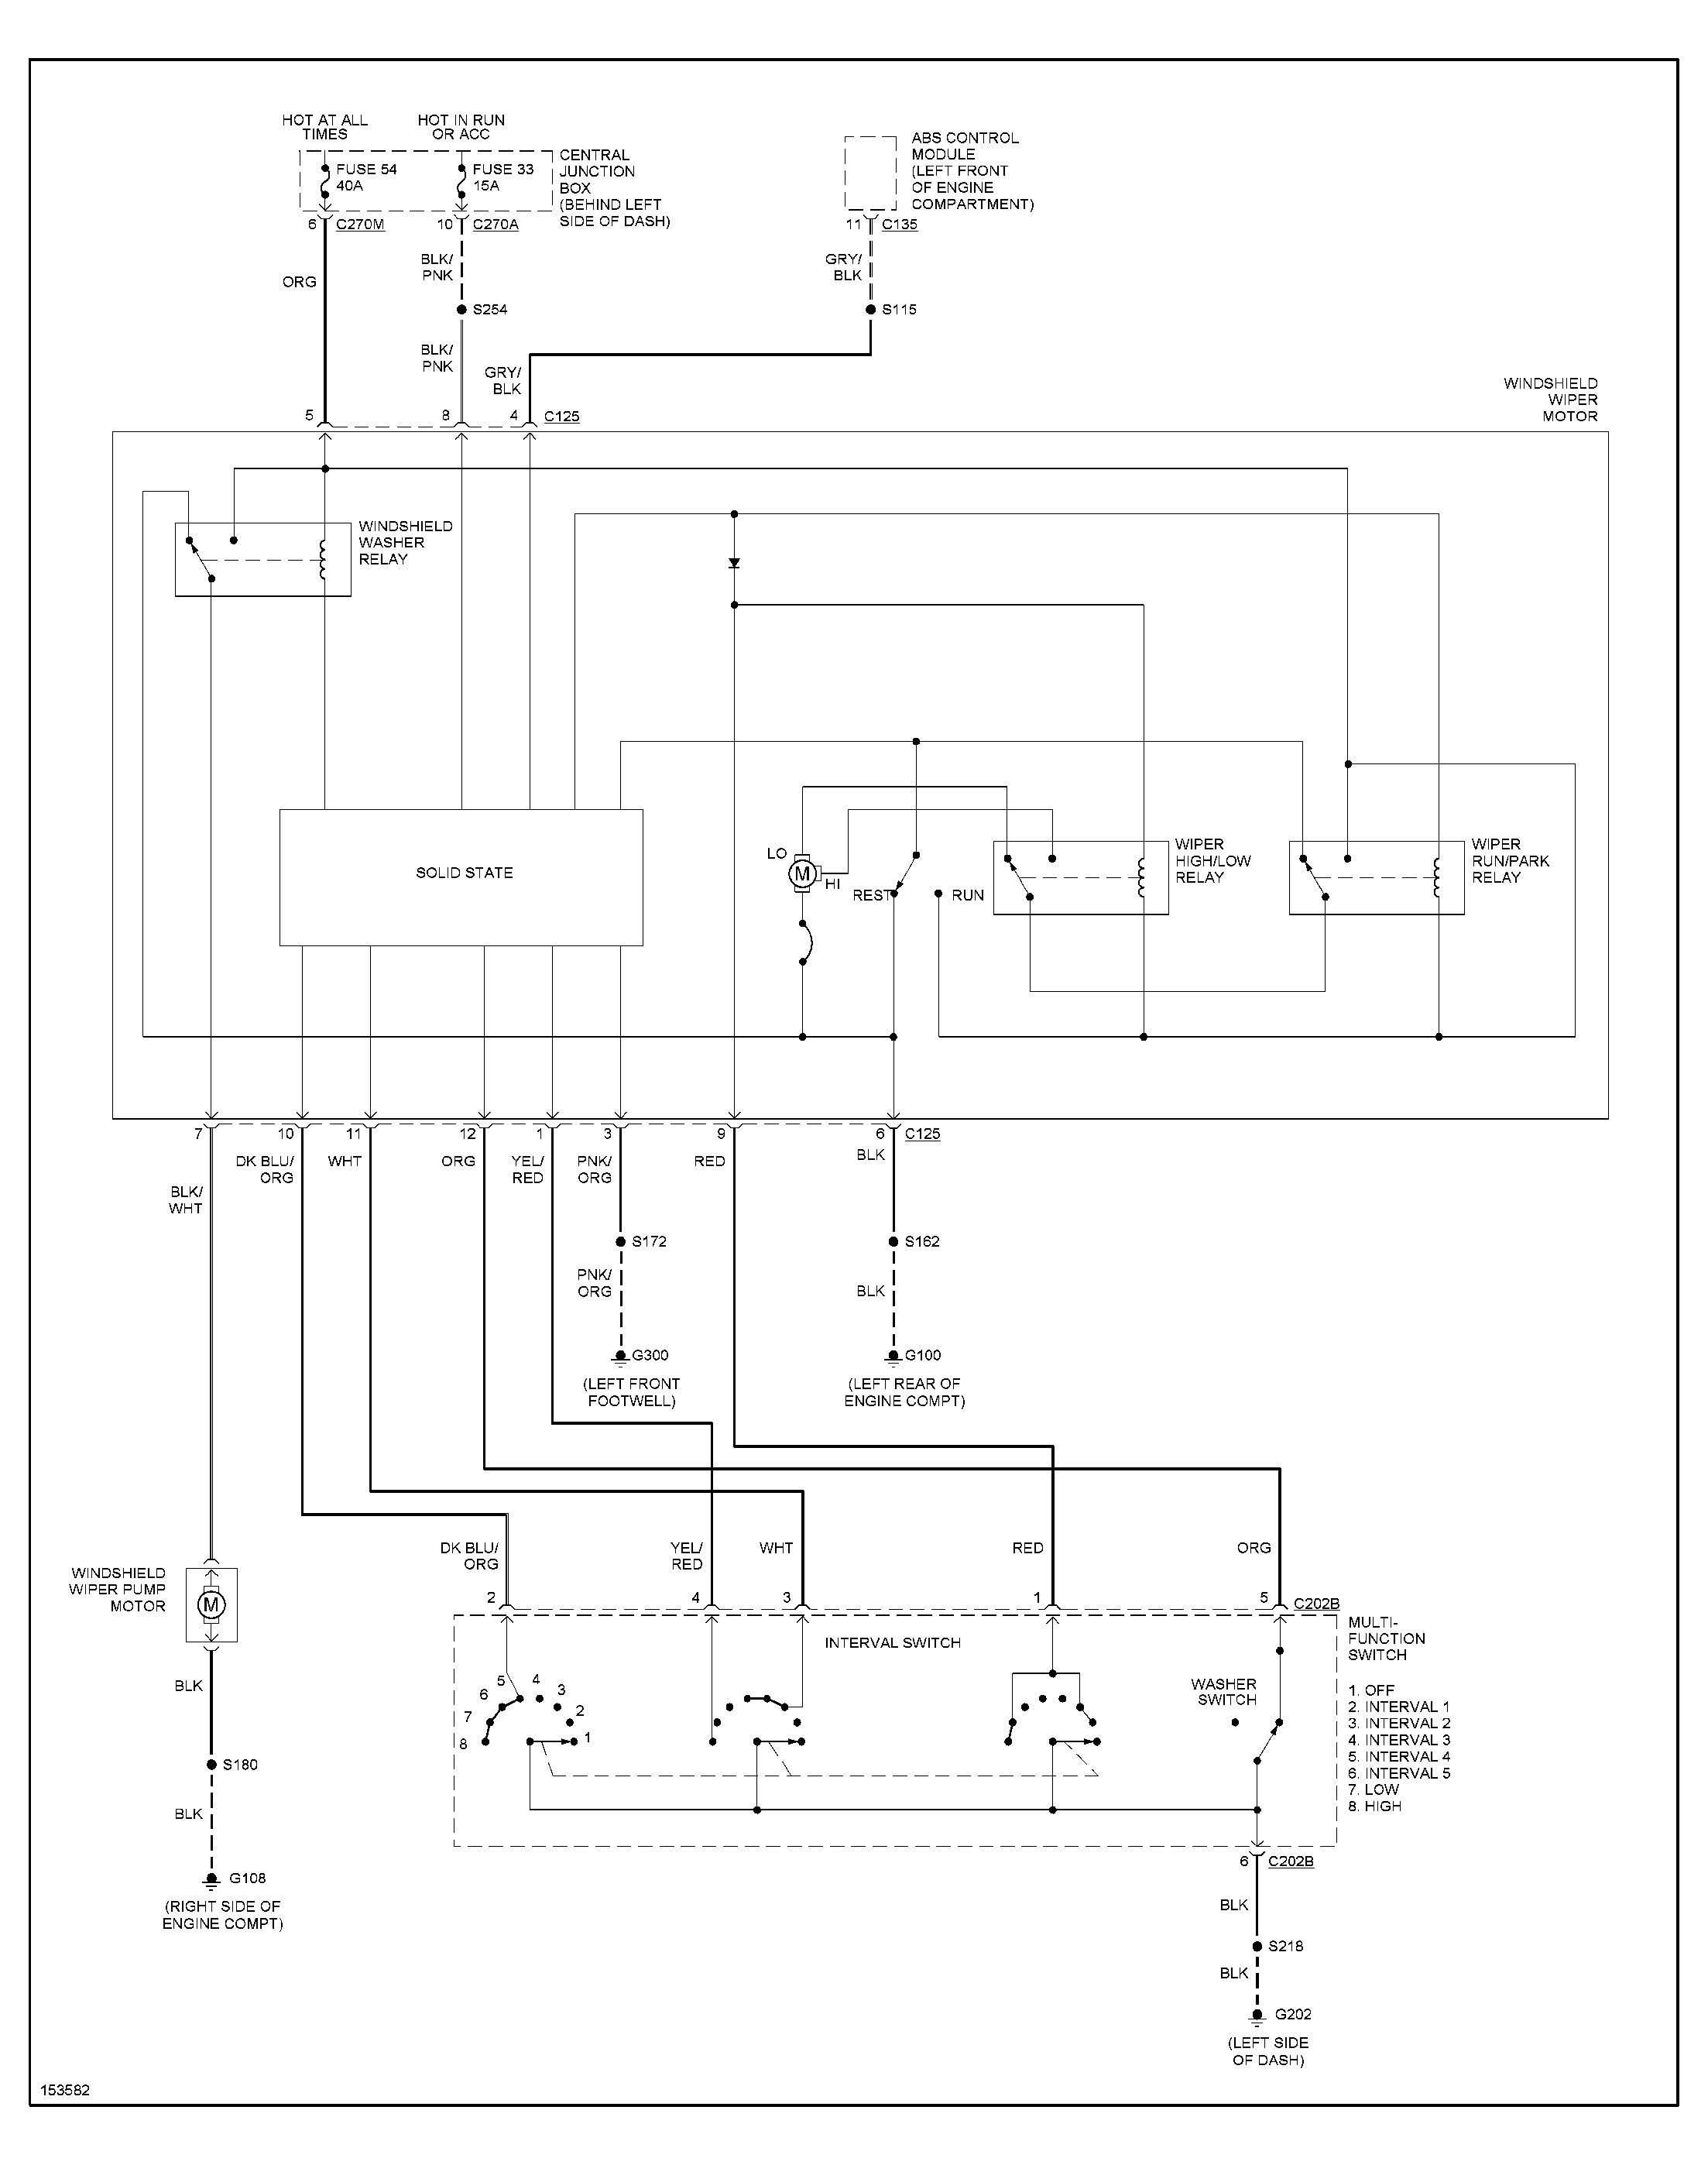 Diagram Ford Focus 2002 Wiring Diagram Full Version Hd Quality Wiring Diagram Bpmdiagramsk Karma Pa It